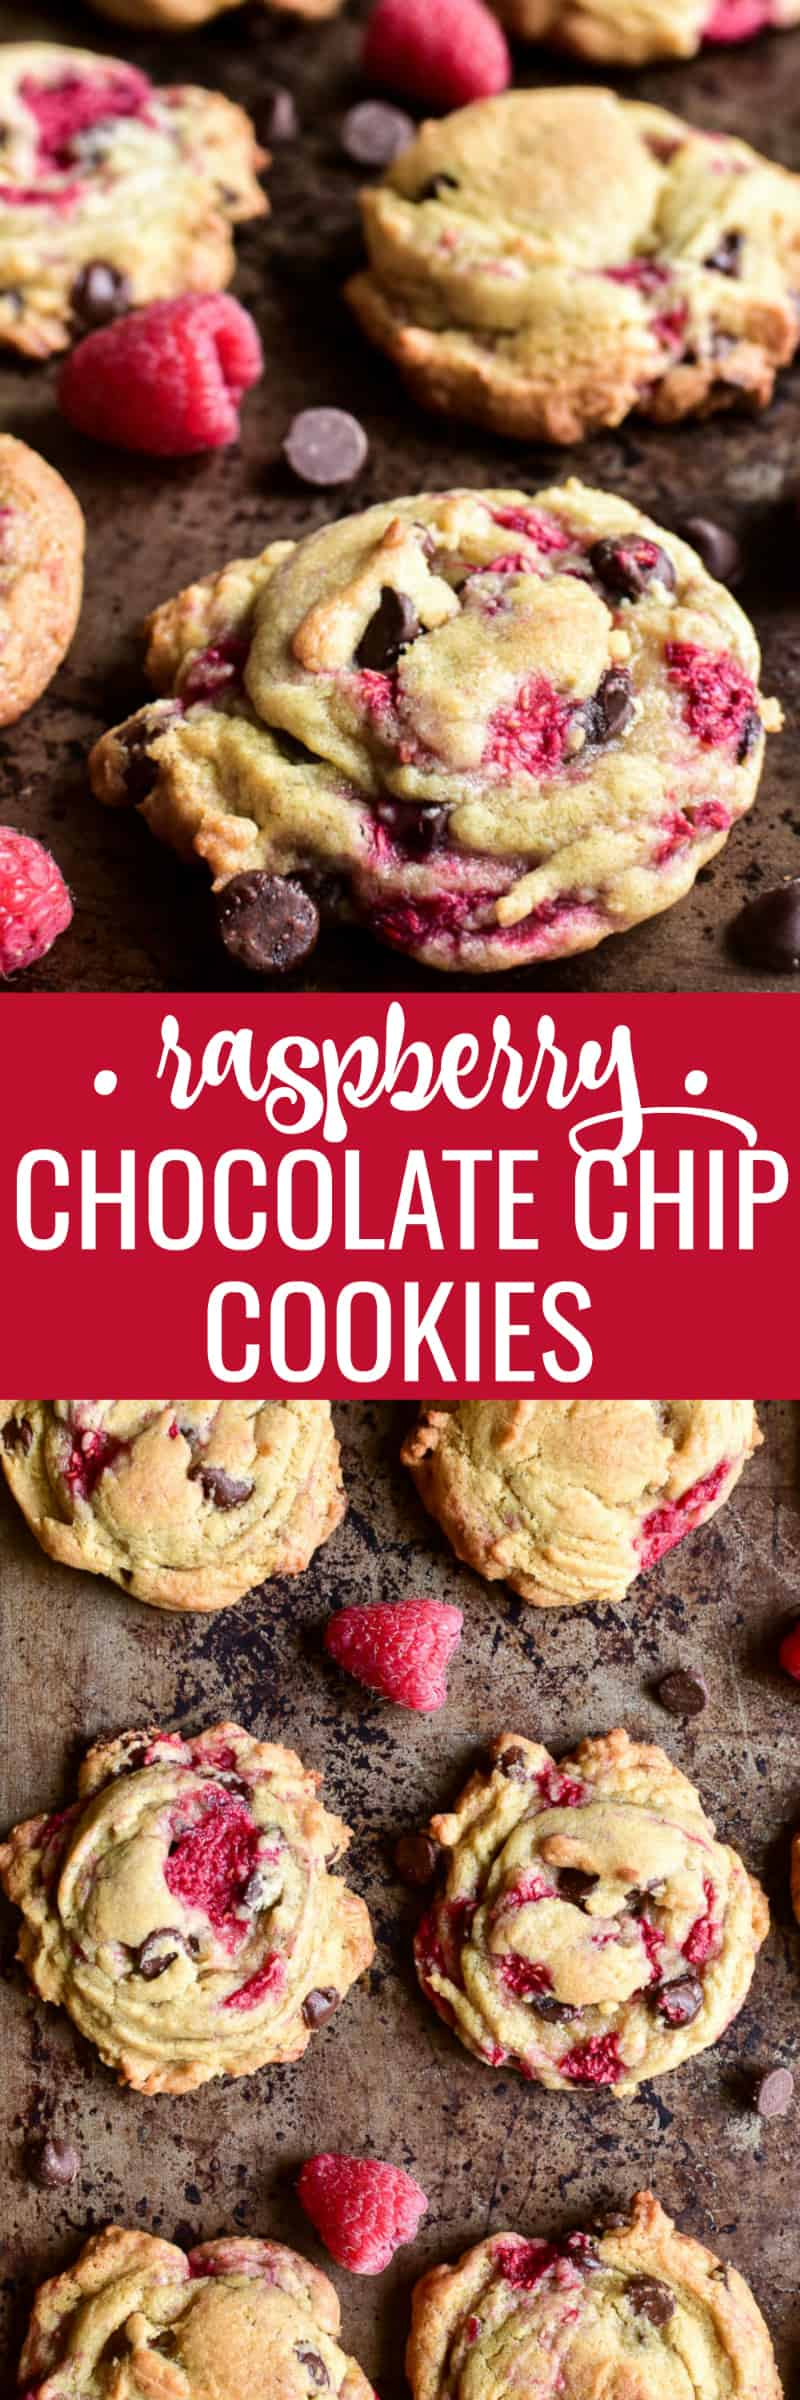 Take chocolate chip cookies to the next level with the addition of fresh raspberries!  These Raspberry Chocolate Chip Cookies are everything you never realized your life was missing. Soft, chewy cookies bursting with the delicious flavors of raspberry and chocolate. If you love chocolate chip cookies, these are sure to become a new favorite.